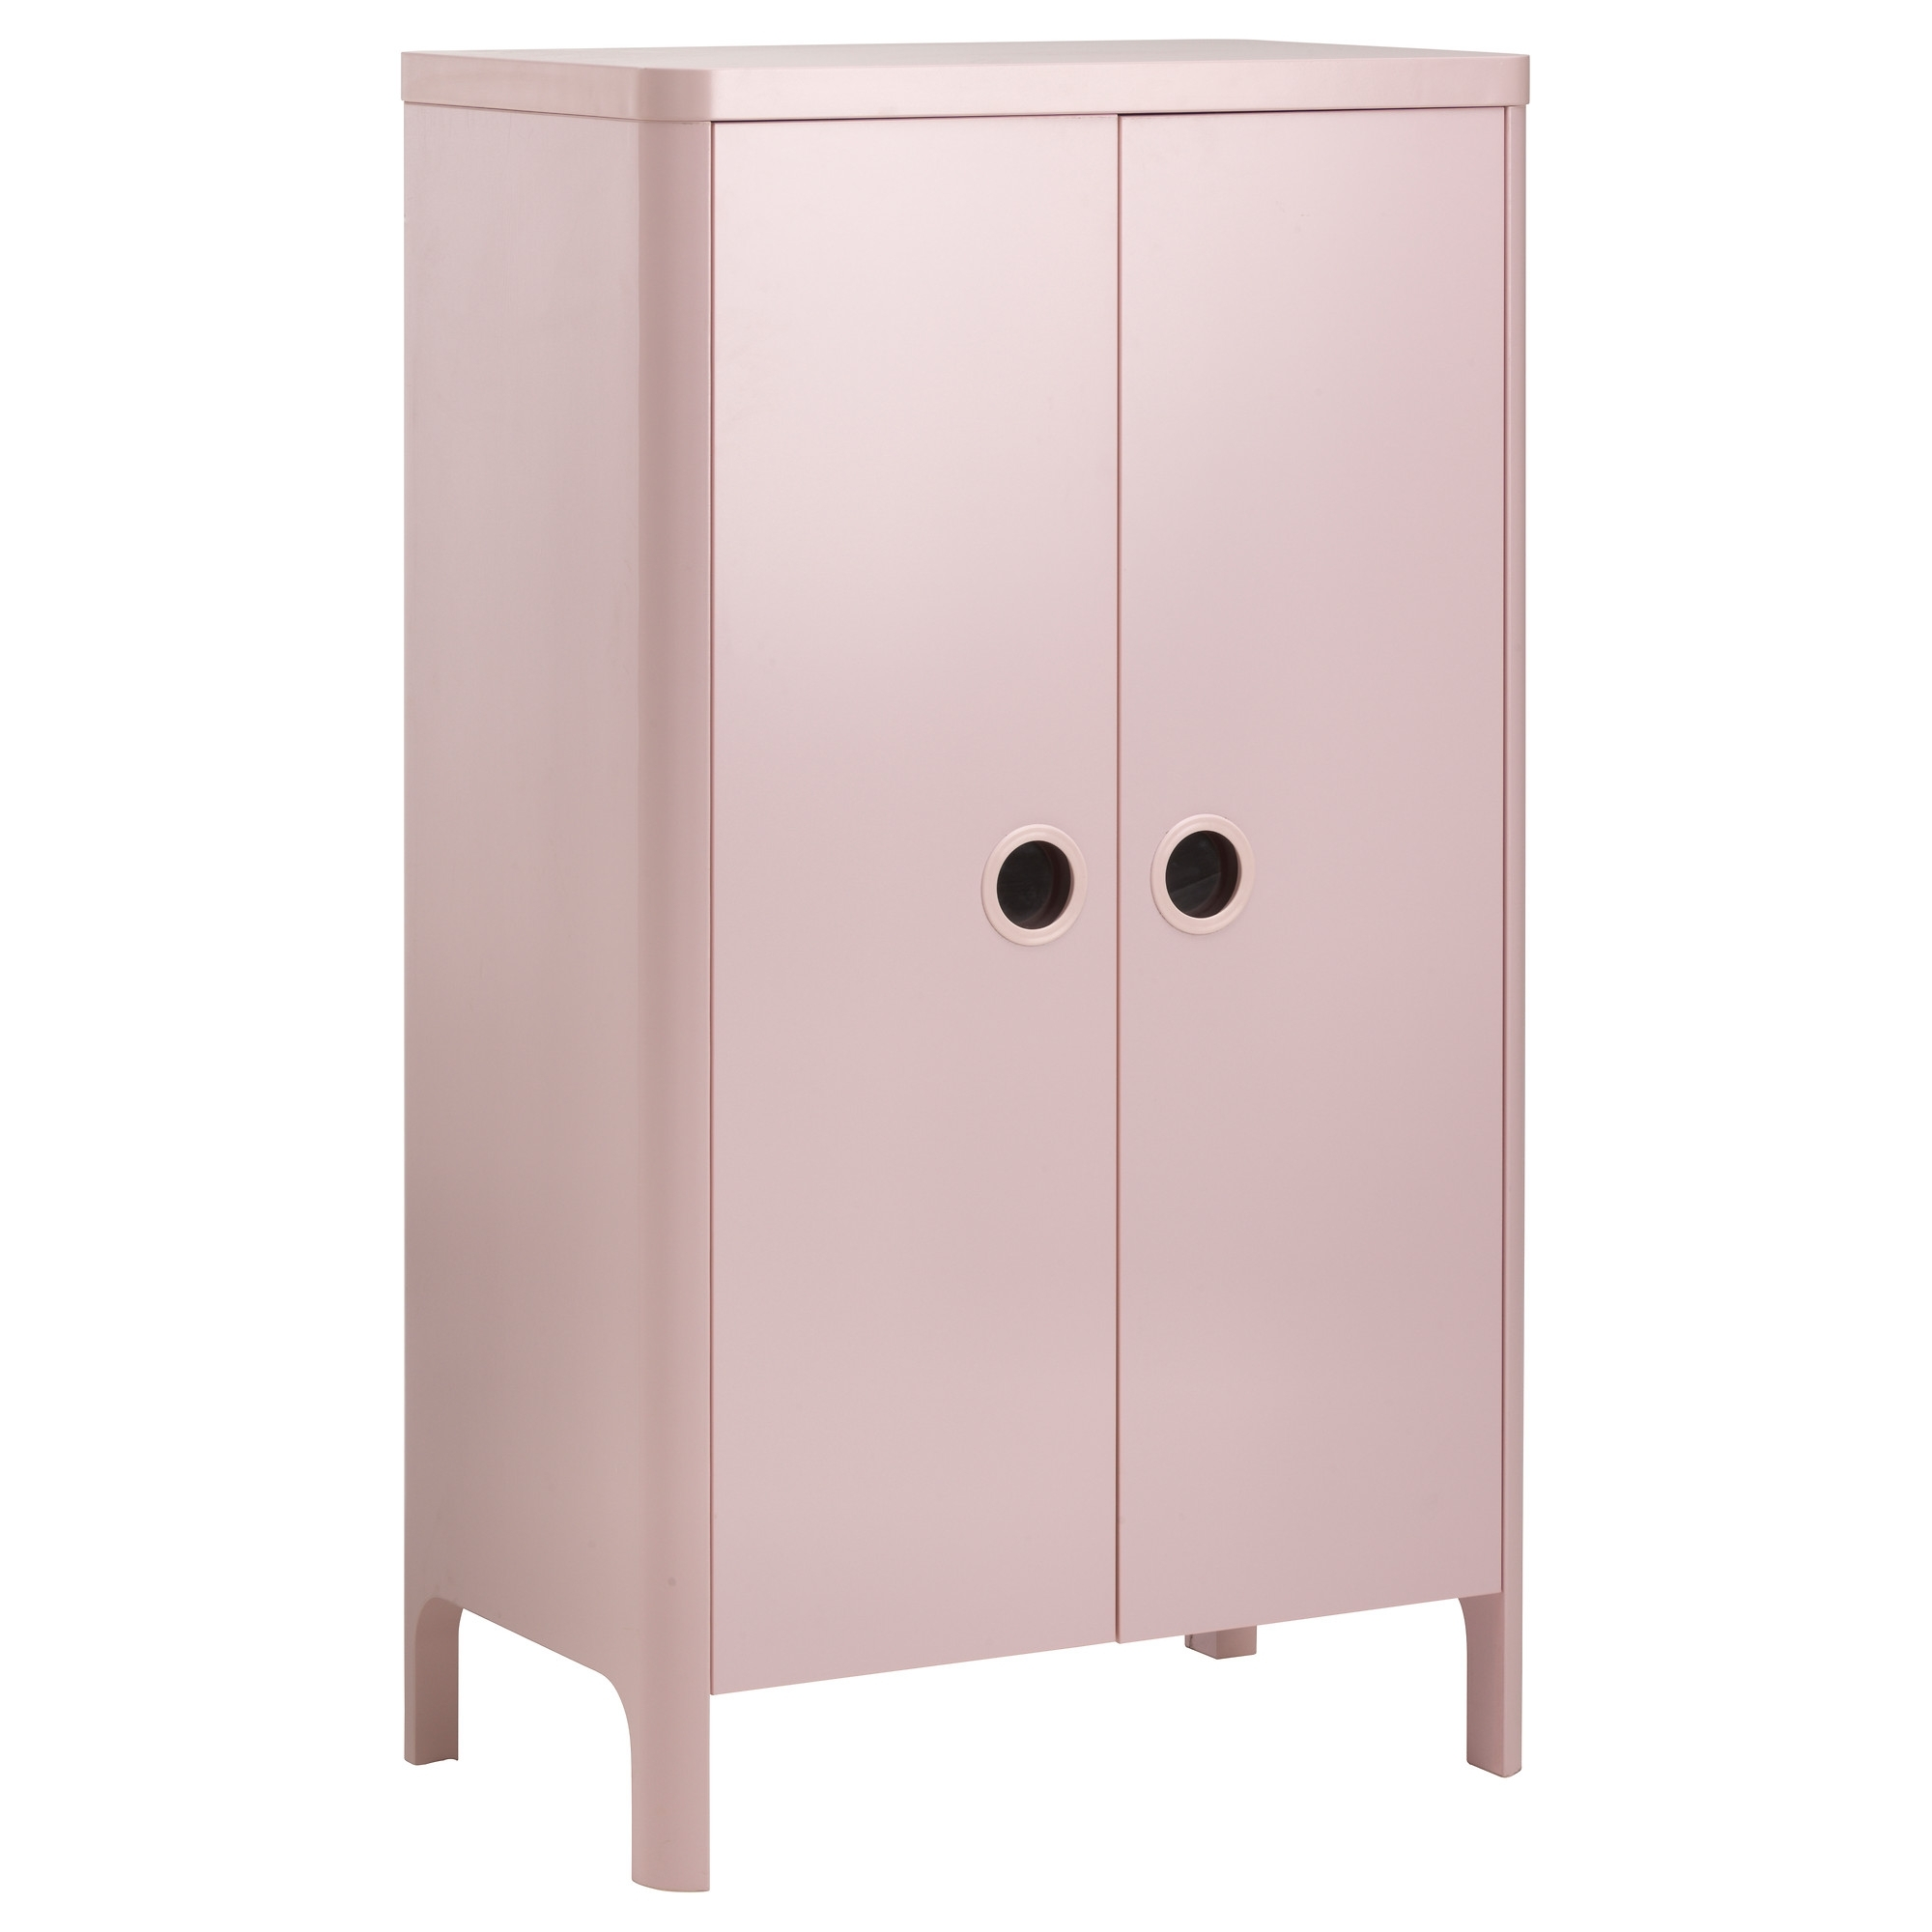 Busunge Wardrobe Light Pink 80X139 Cm – Ikea Regarding Preferred Wardrobes For Baby Clothes (View 12 of 15)